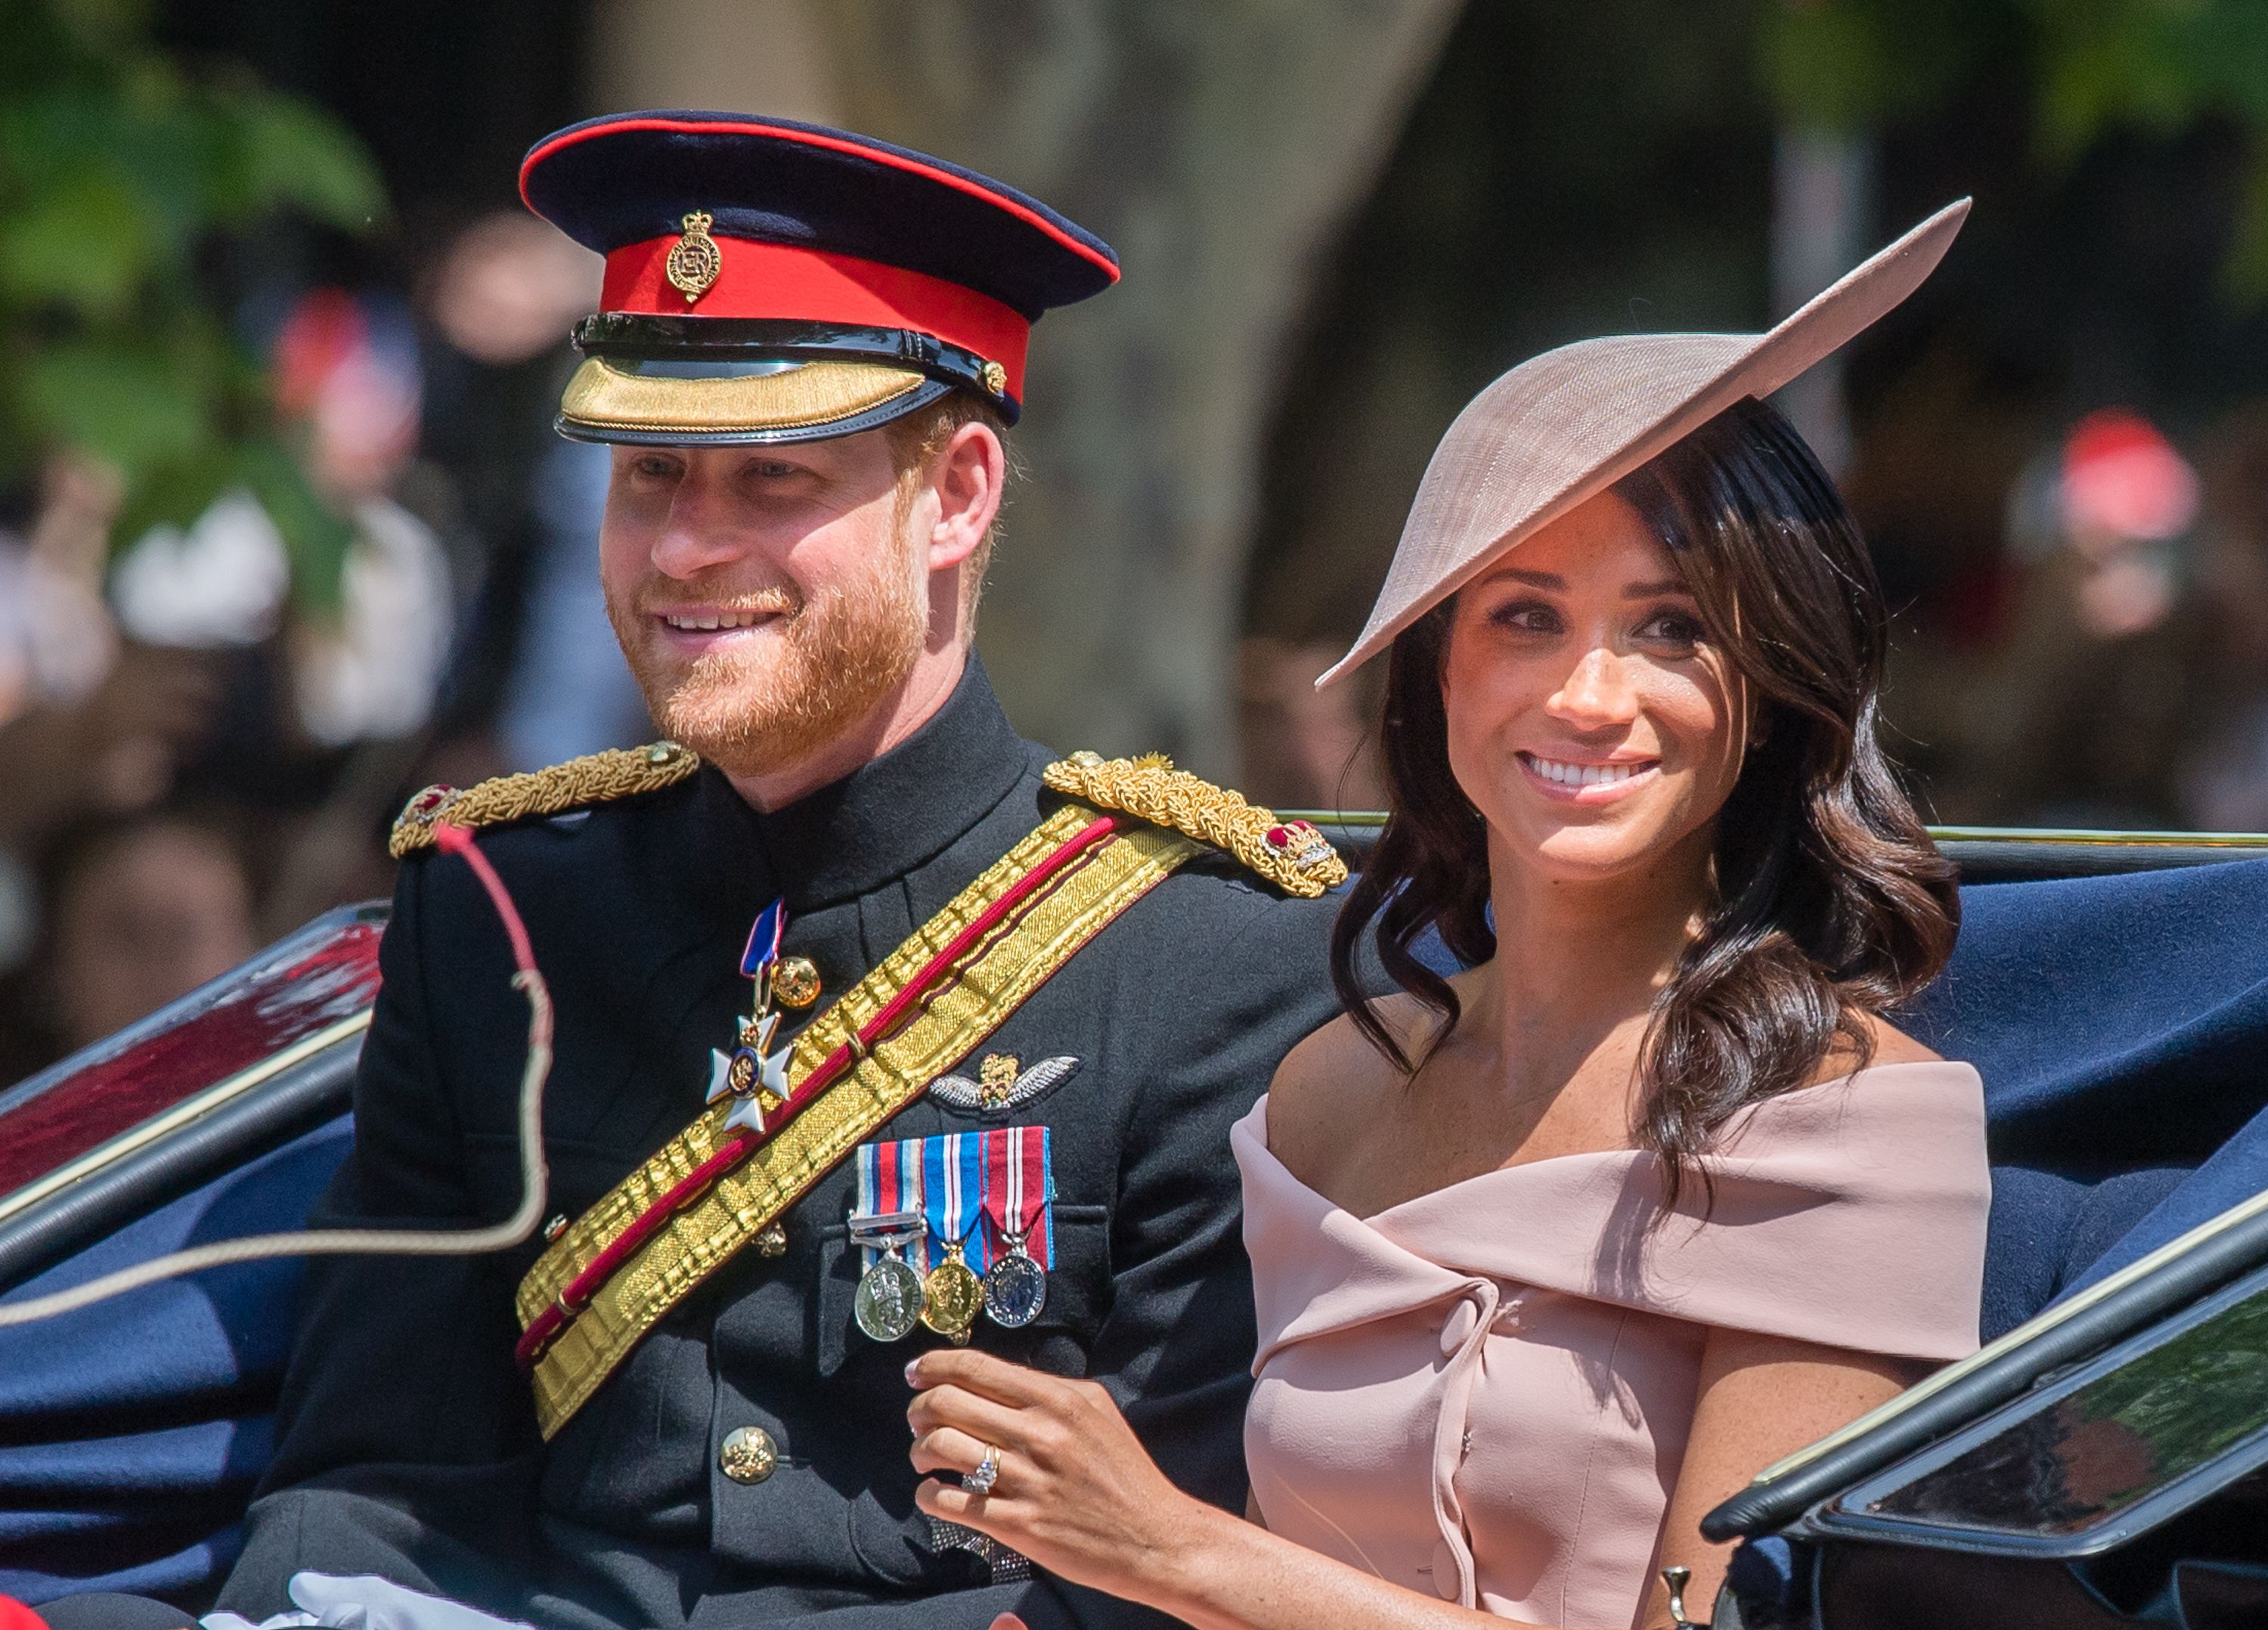 The Palace Announces Meghan Markle and Prince Harry's Final Engagements as Working Royals